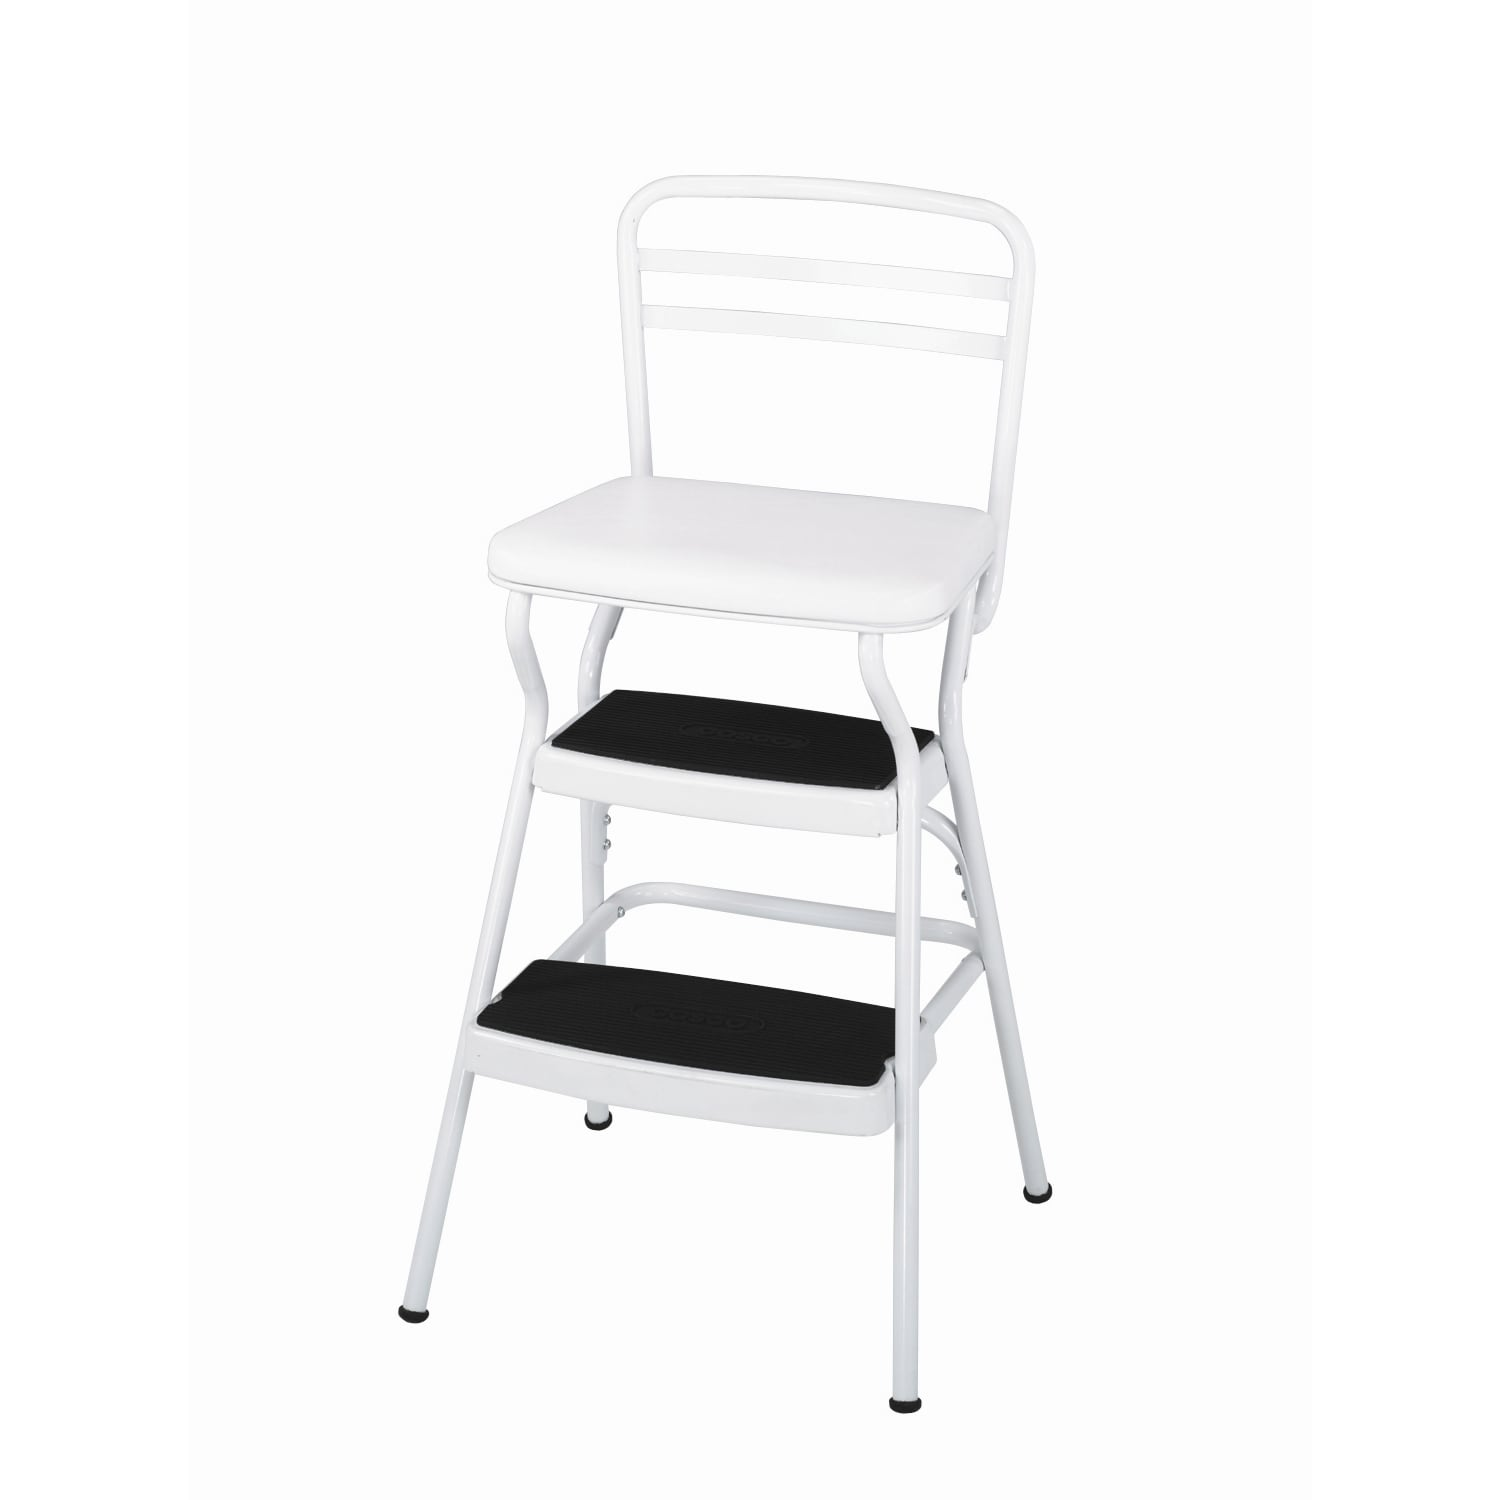 Cosco Retro Counter Lift Up Chair / Step Stool at Sears.com